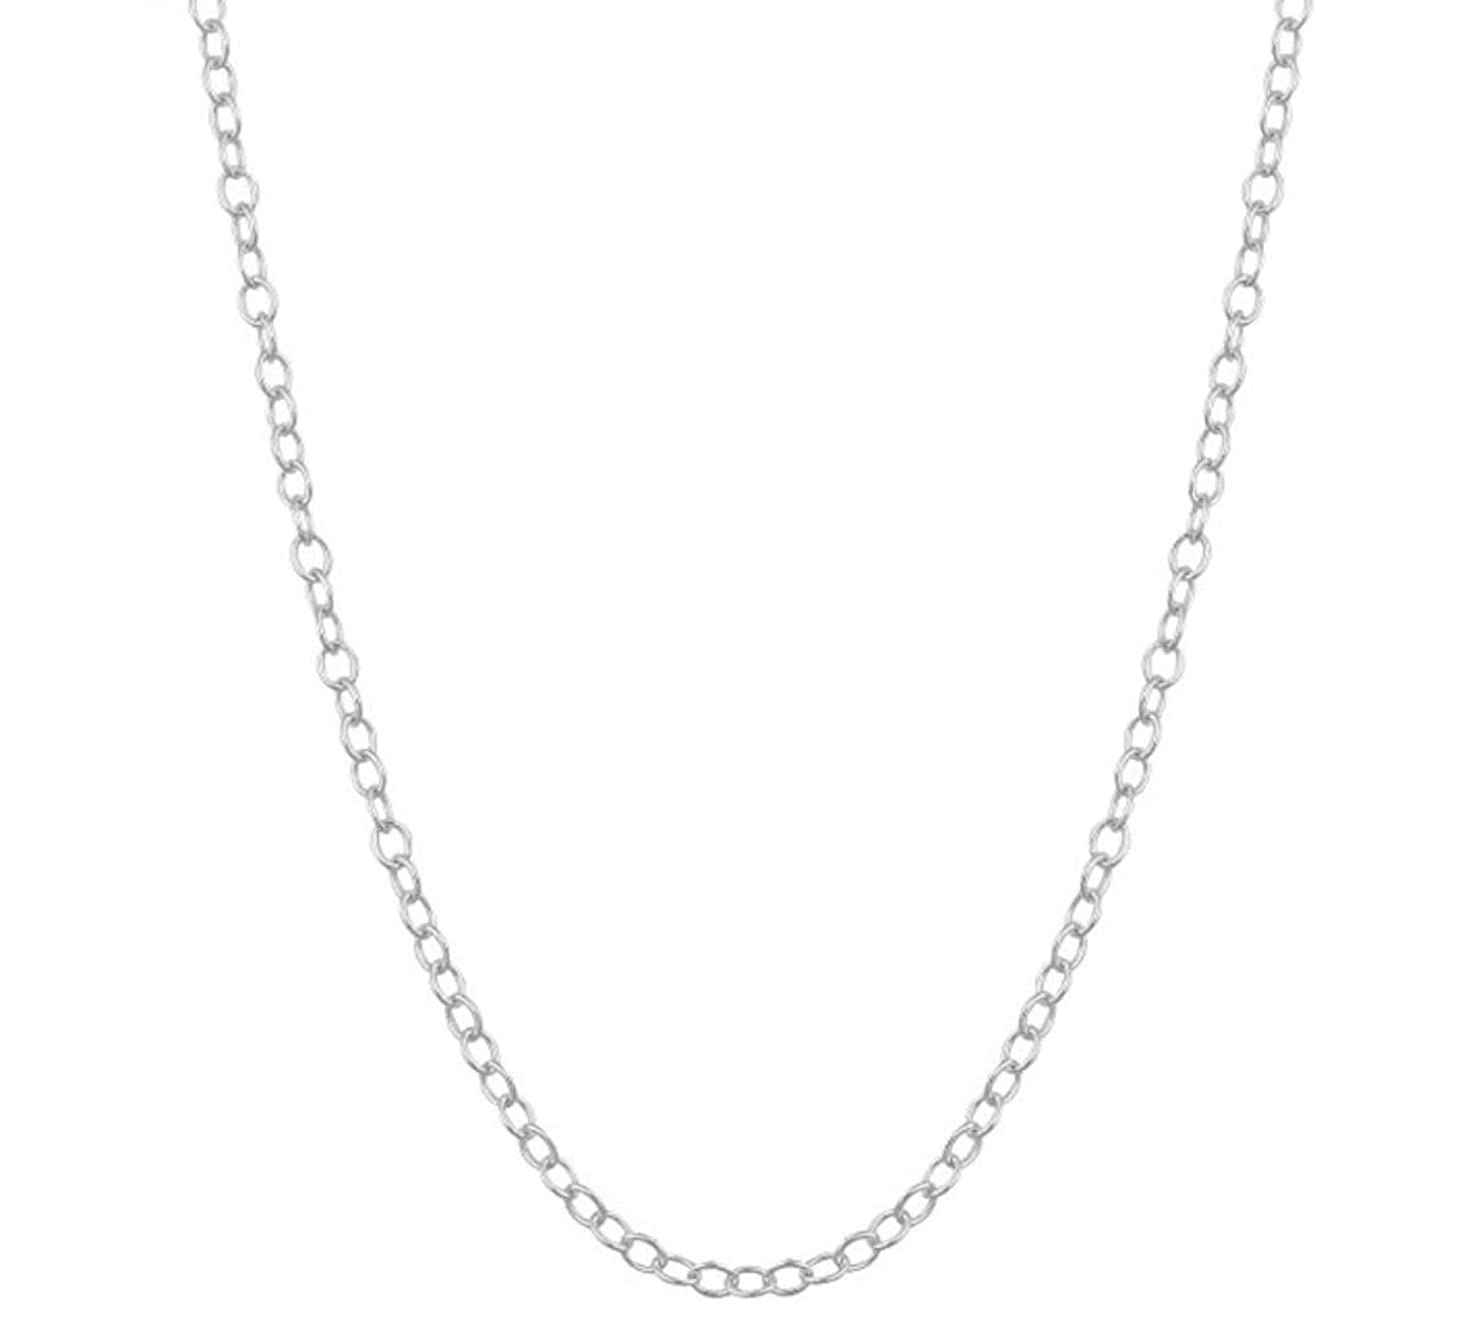 2pcs Top Quality 14 inch Sterling Silver Cable Necklace Chain w/Clasp for Jewelry Making (1.2mm width, Strong) SS159